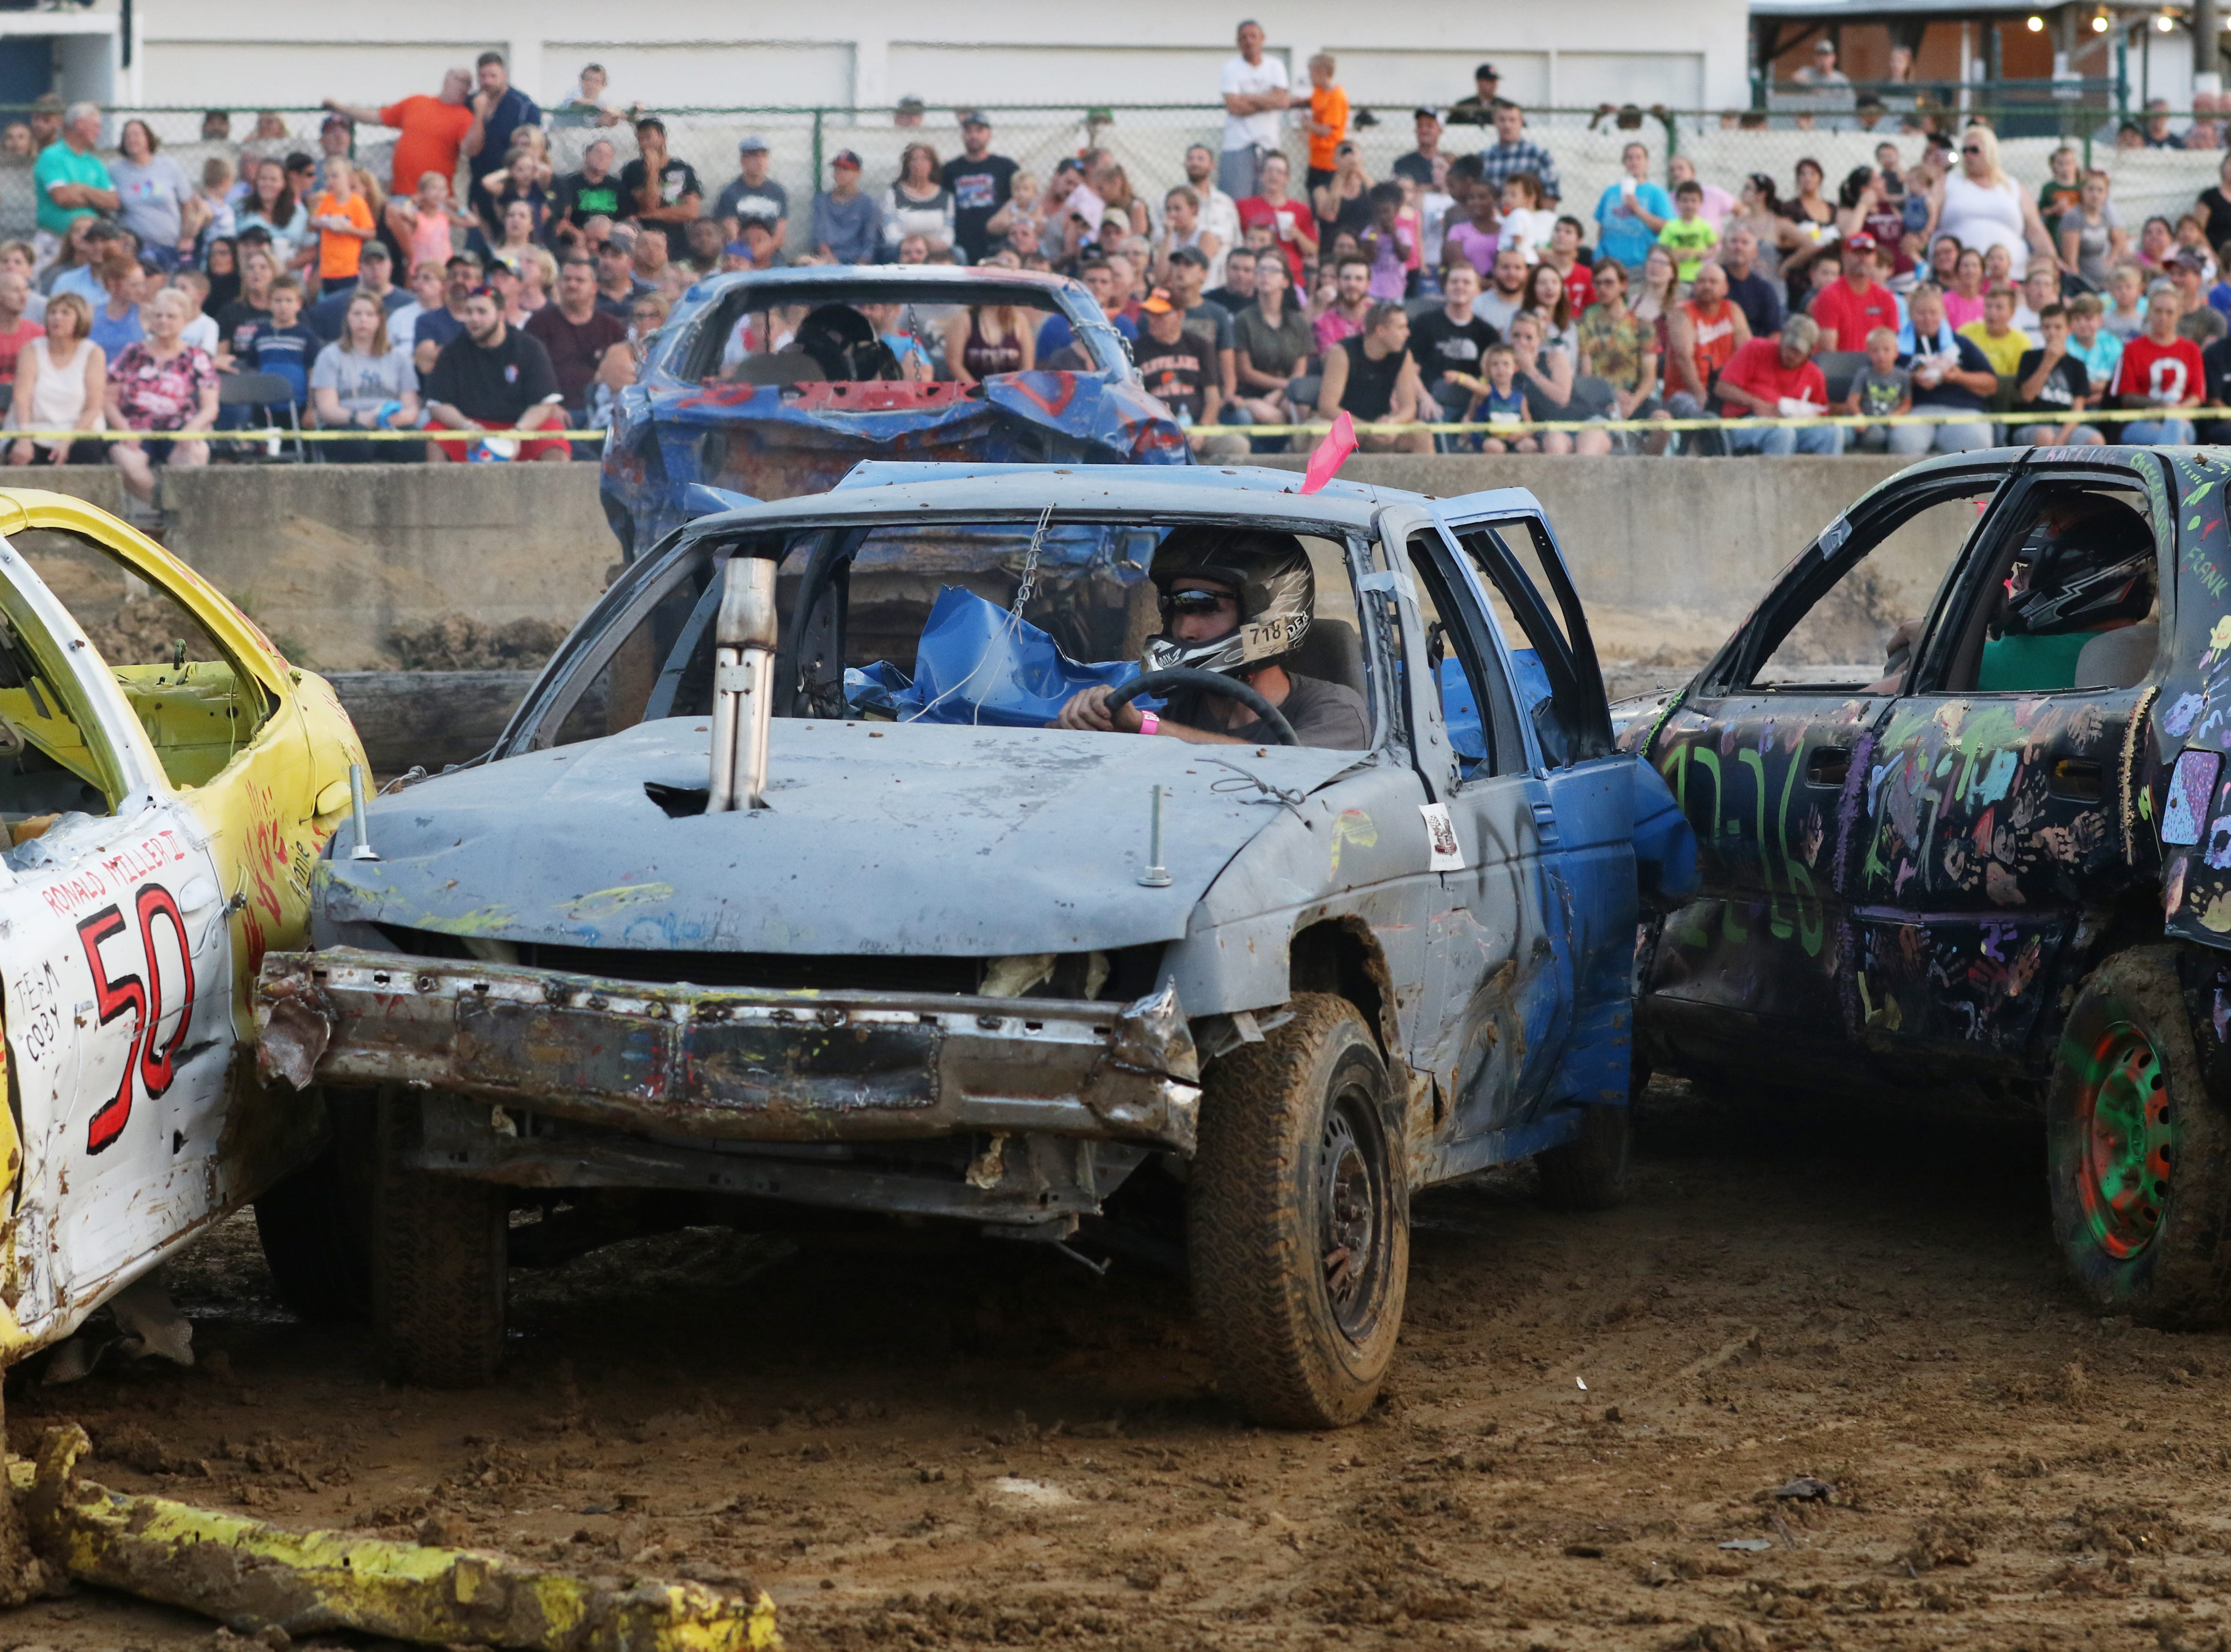 Scott Cordle is sandwiched during the Sarge and Sons Demolition Derby at the Muskingum County Fair on Tuesday.